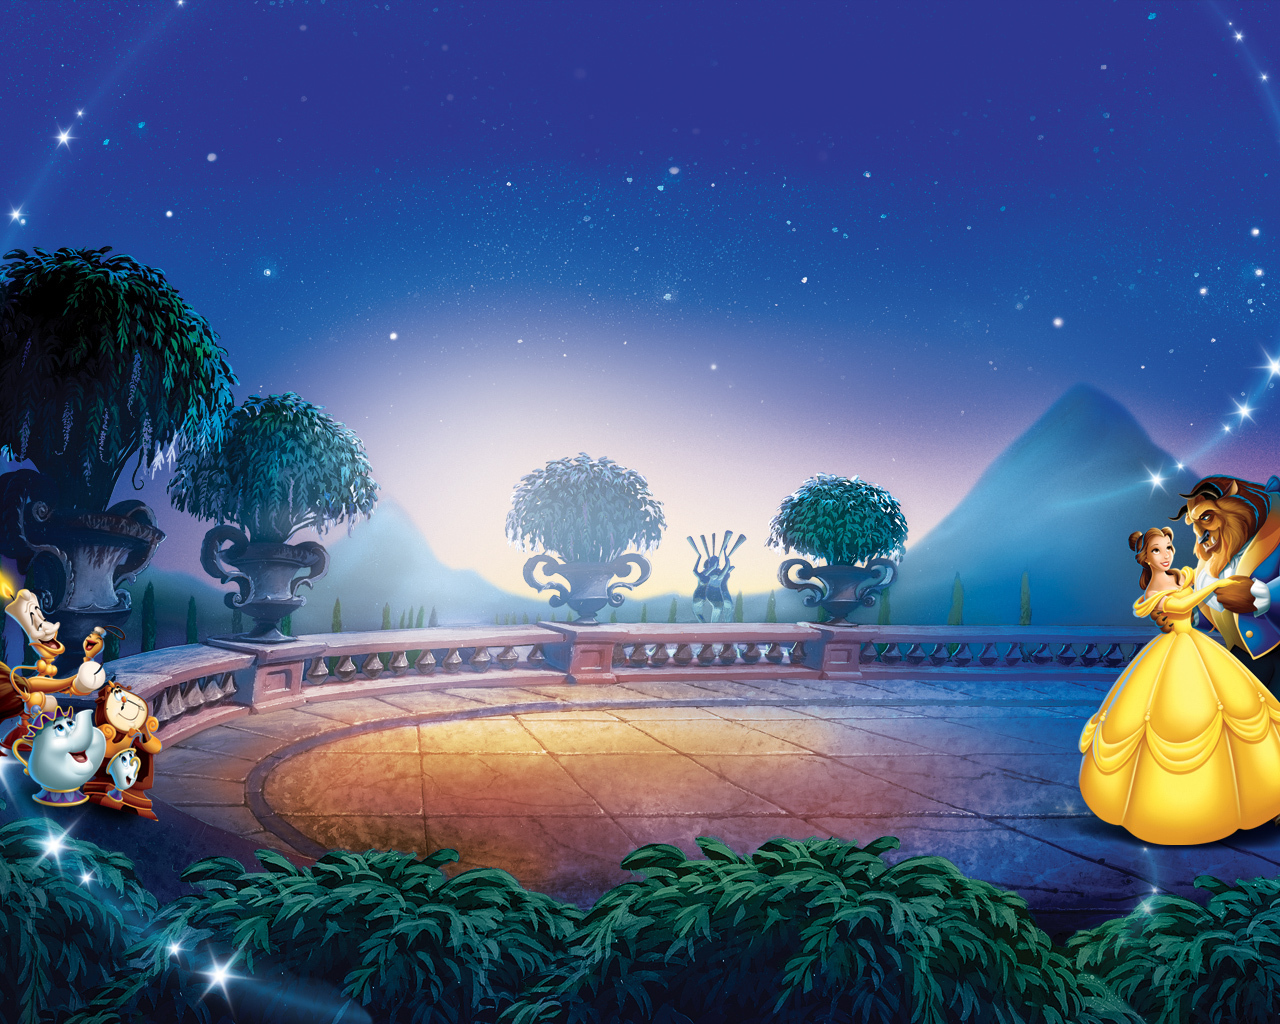 http://4.bp.blogspot.com/-7XhUMfTa3FI/TxXmwX57rrI/AAAAAAAAOFM/tFW2_raEgoo/s1600/beauty-and-the-beast-disney-princess-wallpaper.jpg